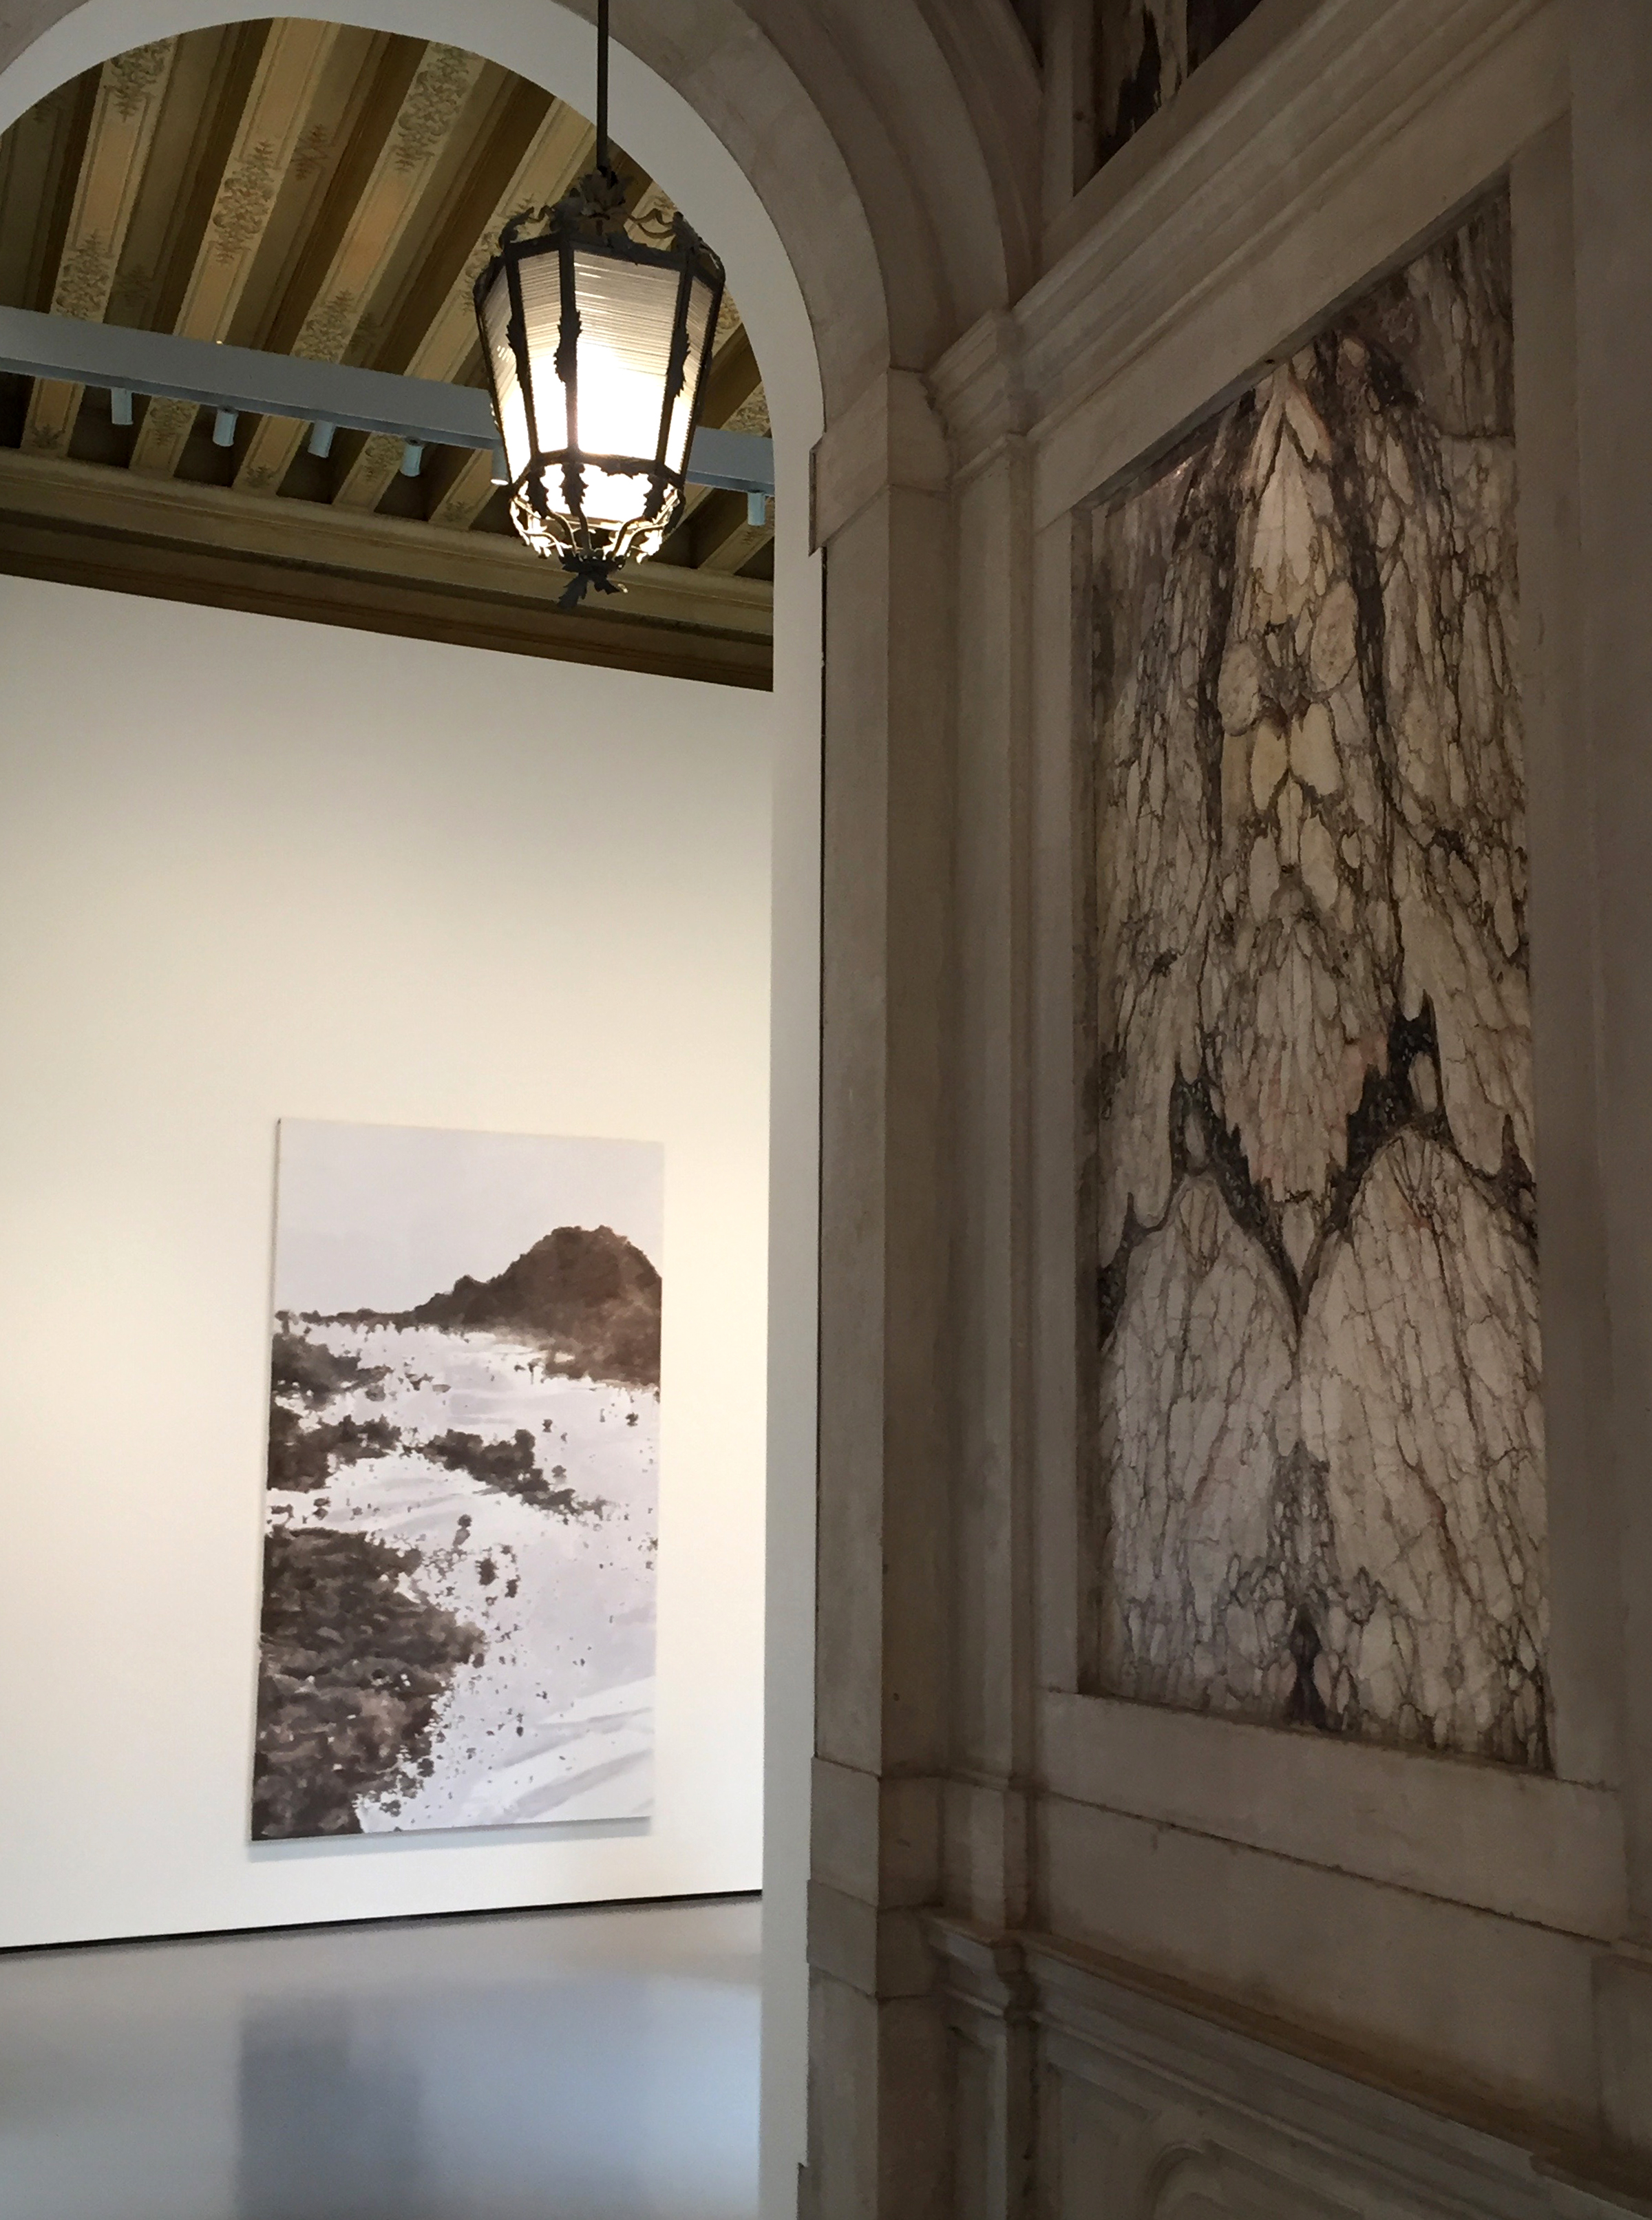 Luc Tuymans,  Mountain,  2016 at Palazzo Grassi, Venice, a part of the extraordinary day of art exhibitions Elizabeth experienced on the final day of the field school in Venice.